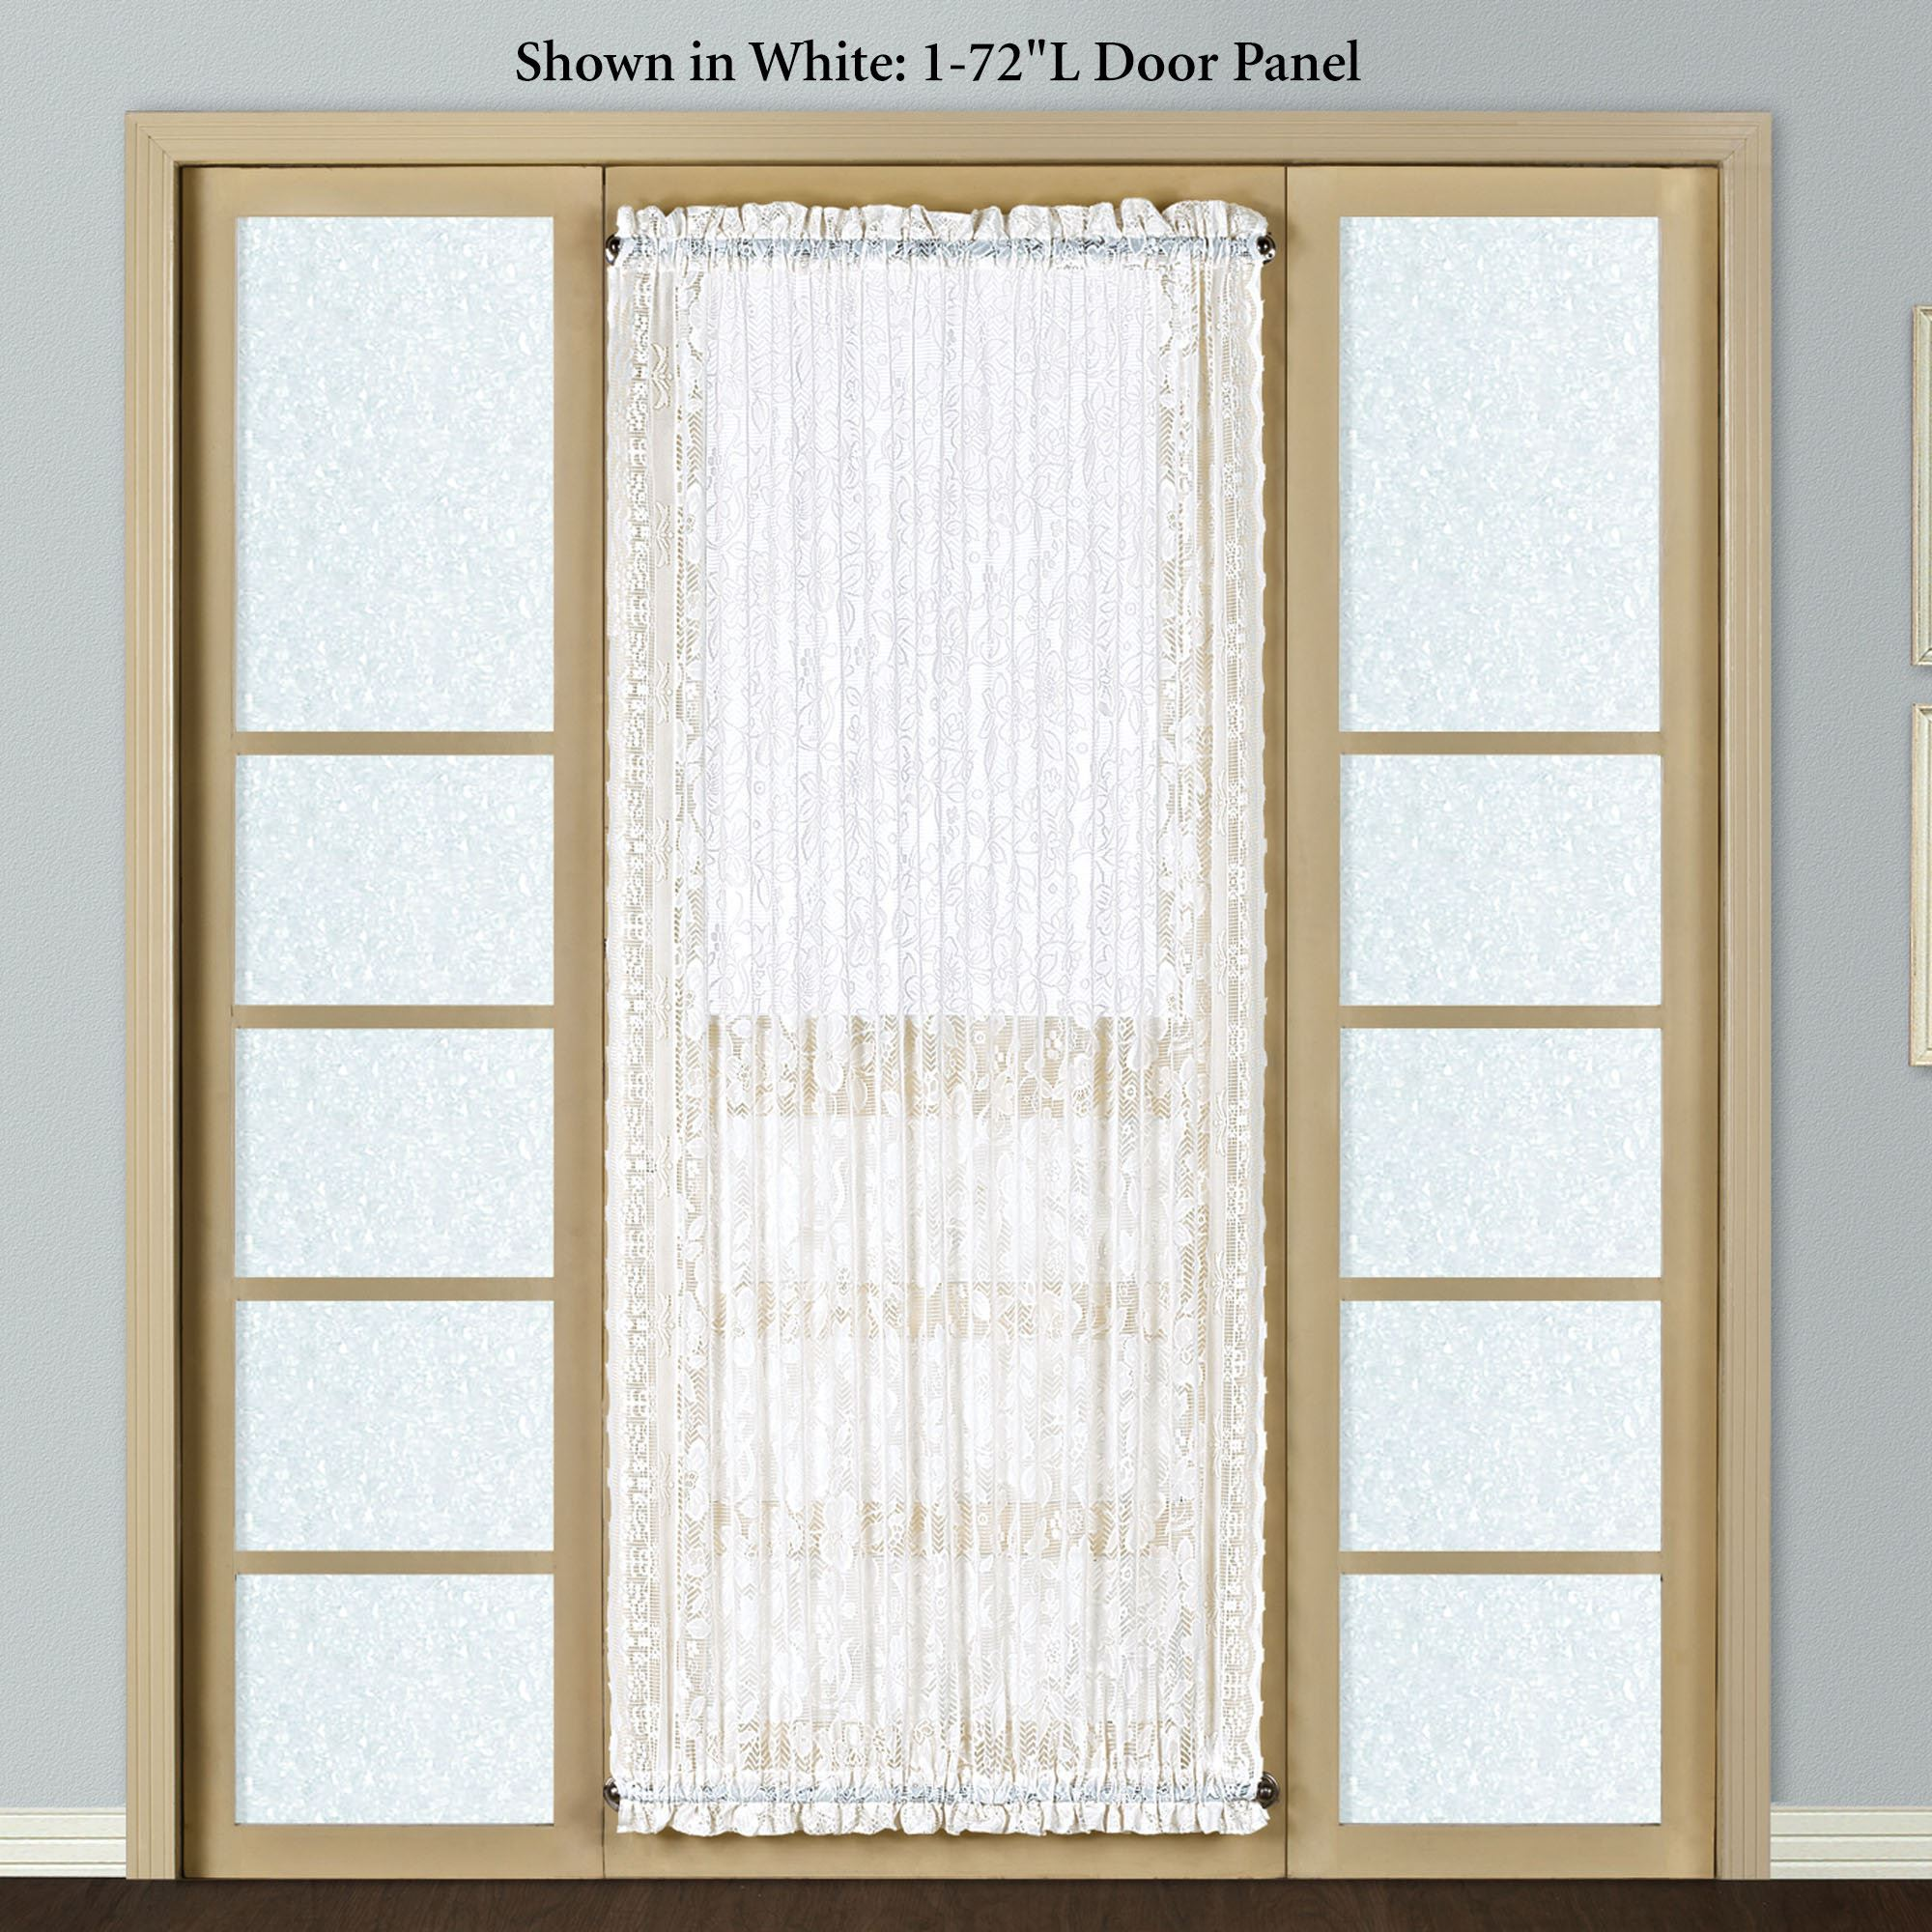 Clear sash curtain rods - You Might Also Consider Sash Curtain Rod White